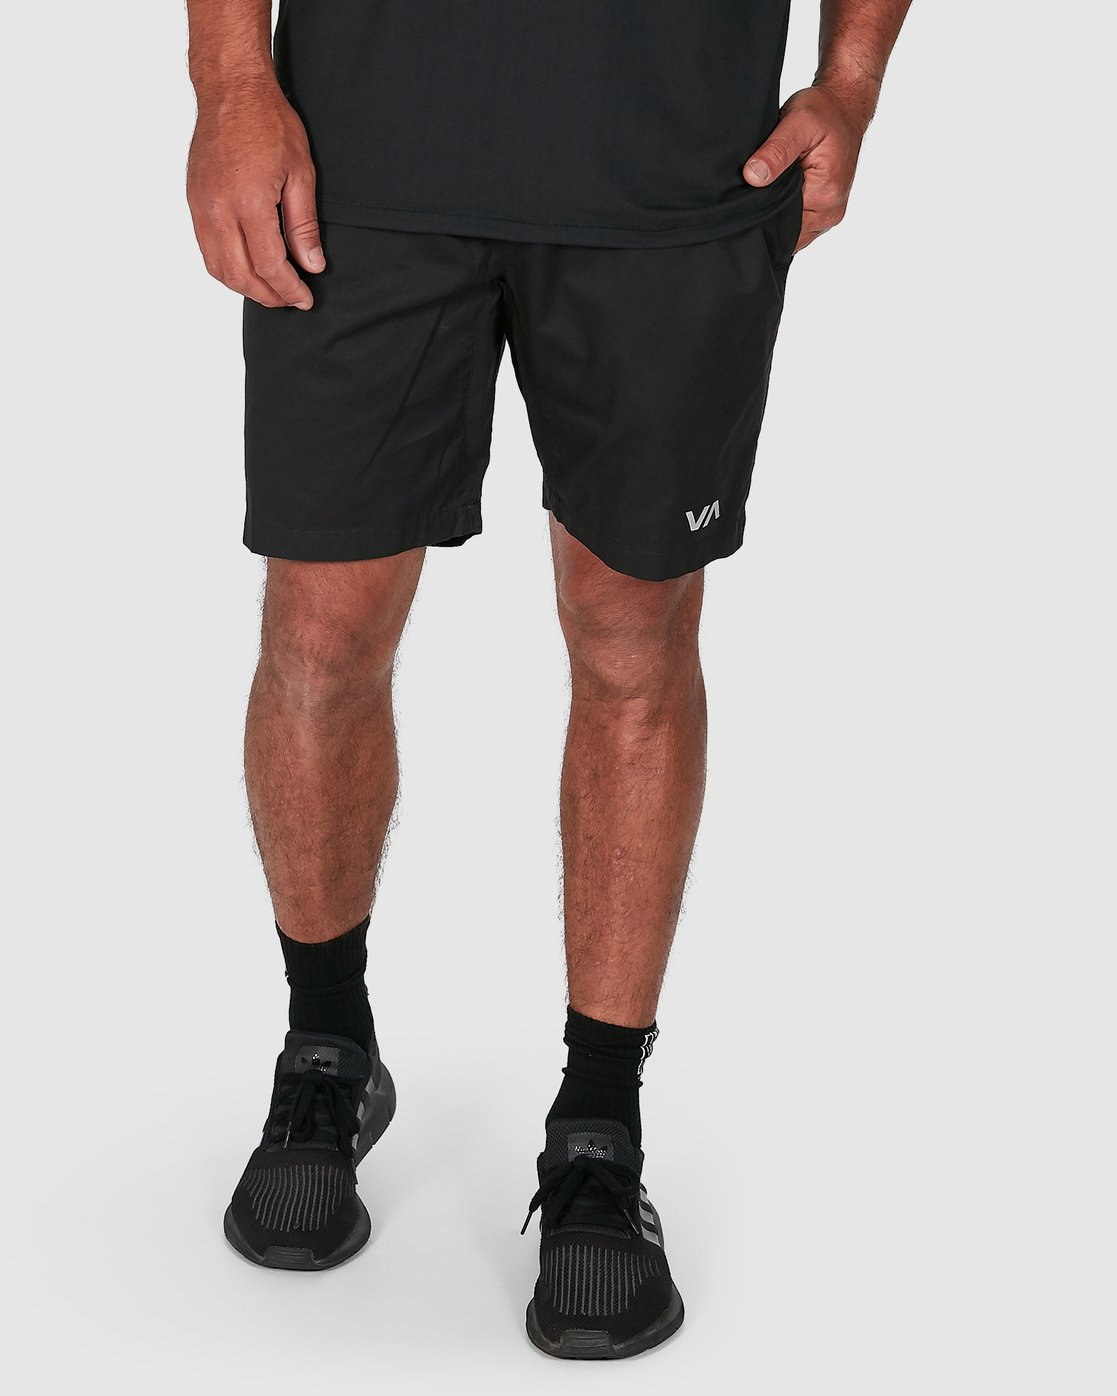 12 SPECTRUM SHORTS Black R107311 RVCA